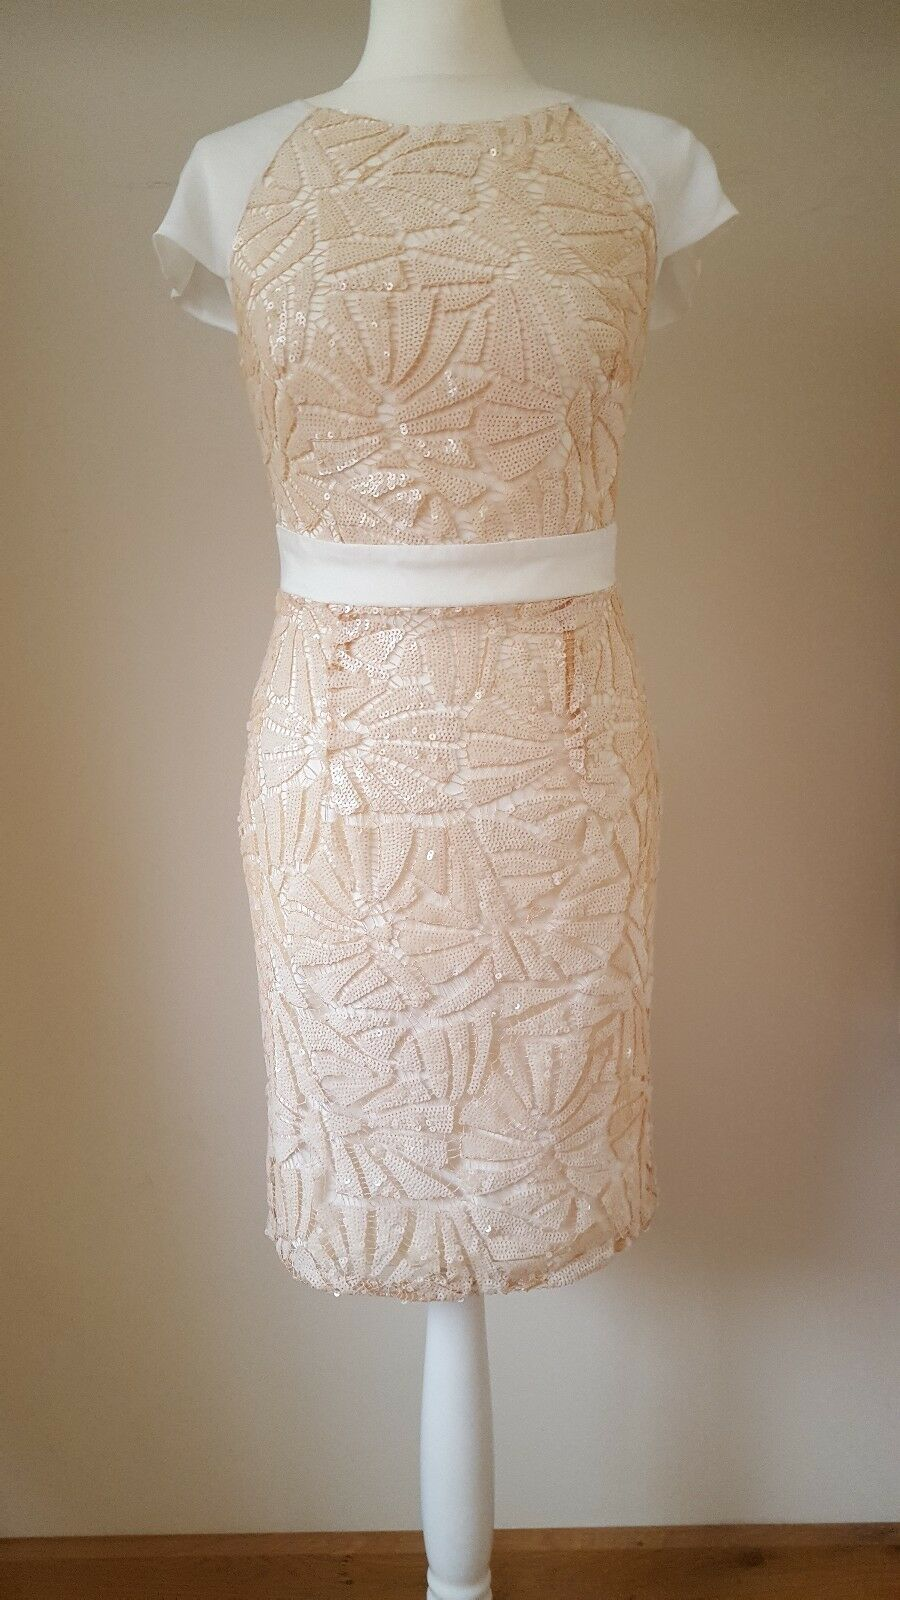 c7c65ce65f2 Lipsy VIP All Over Textured Sequin Sequin Sequin Embellished Cut Out Shift  Dress UK10 RRP 6c4925